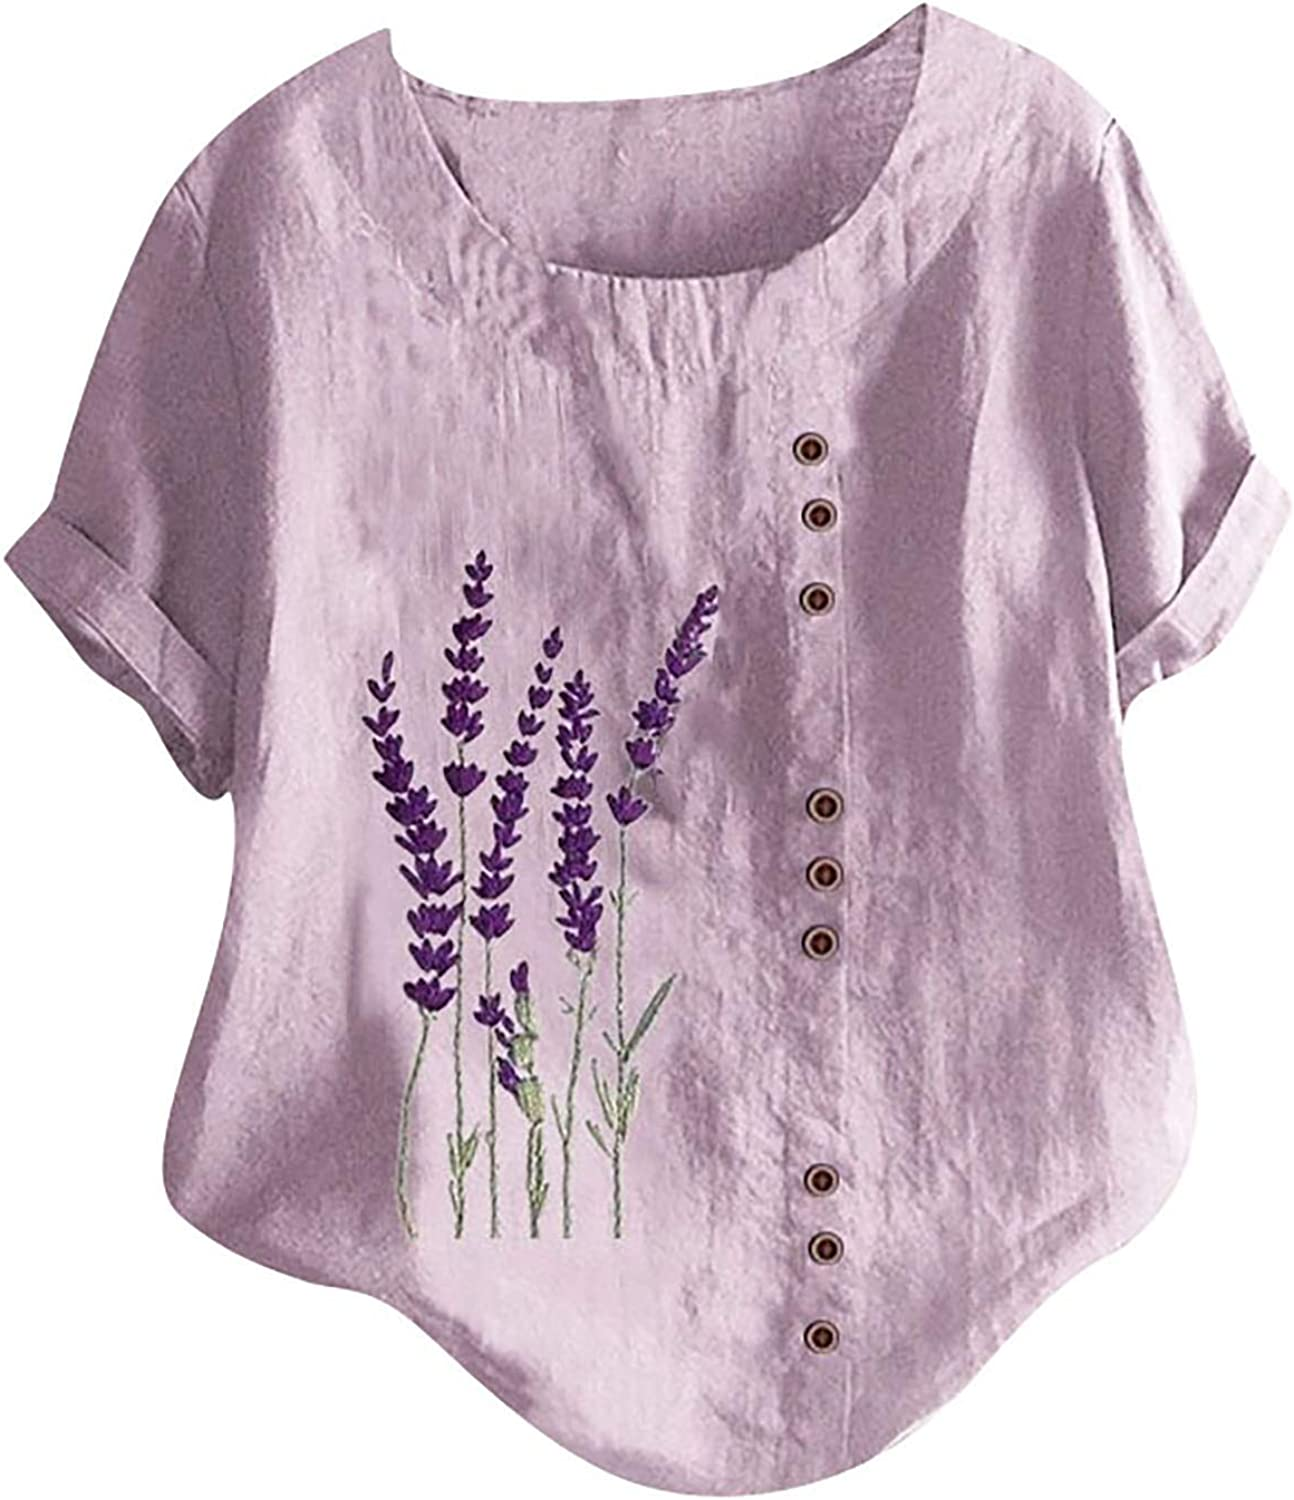 Womens Summer Casual Cotton Linen Tunic Tops O-Neck Lavender Flowers Printing Loose Pullover Blouse T-Shirt Top